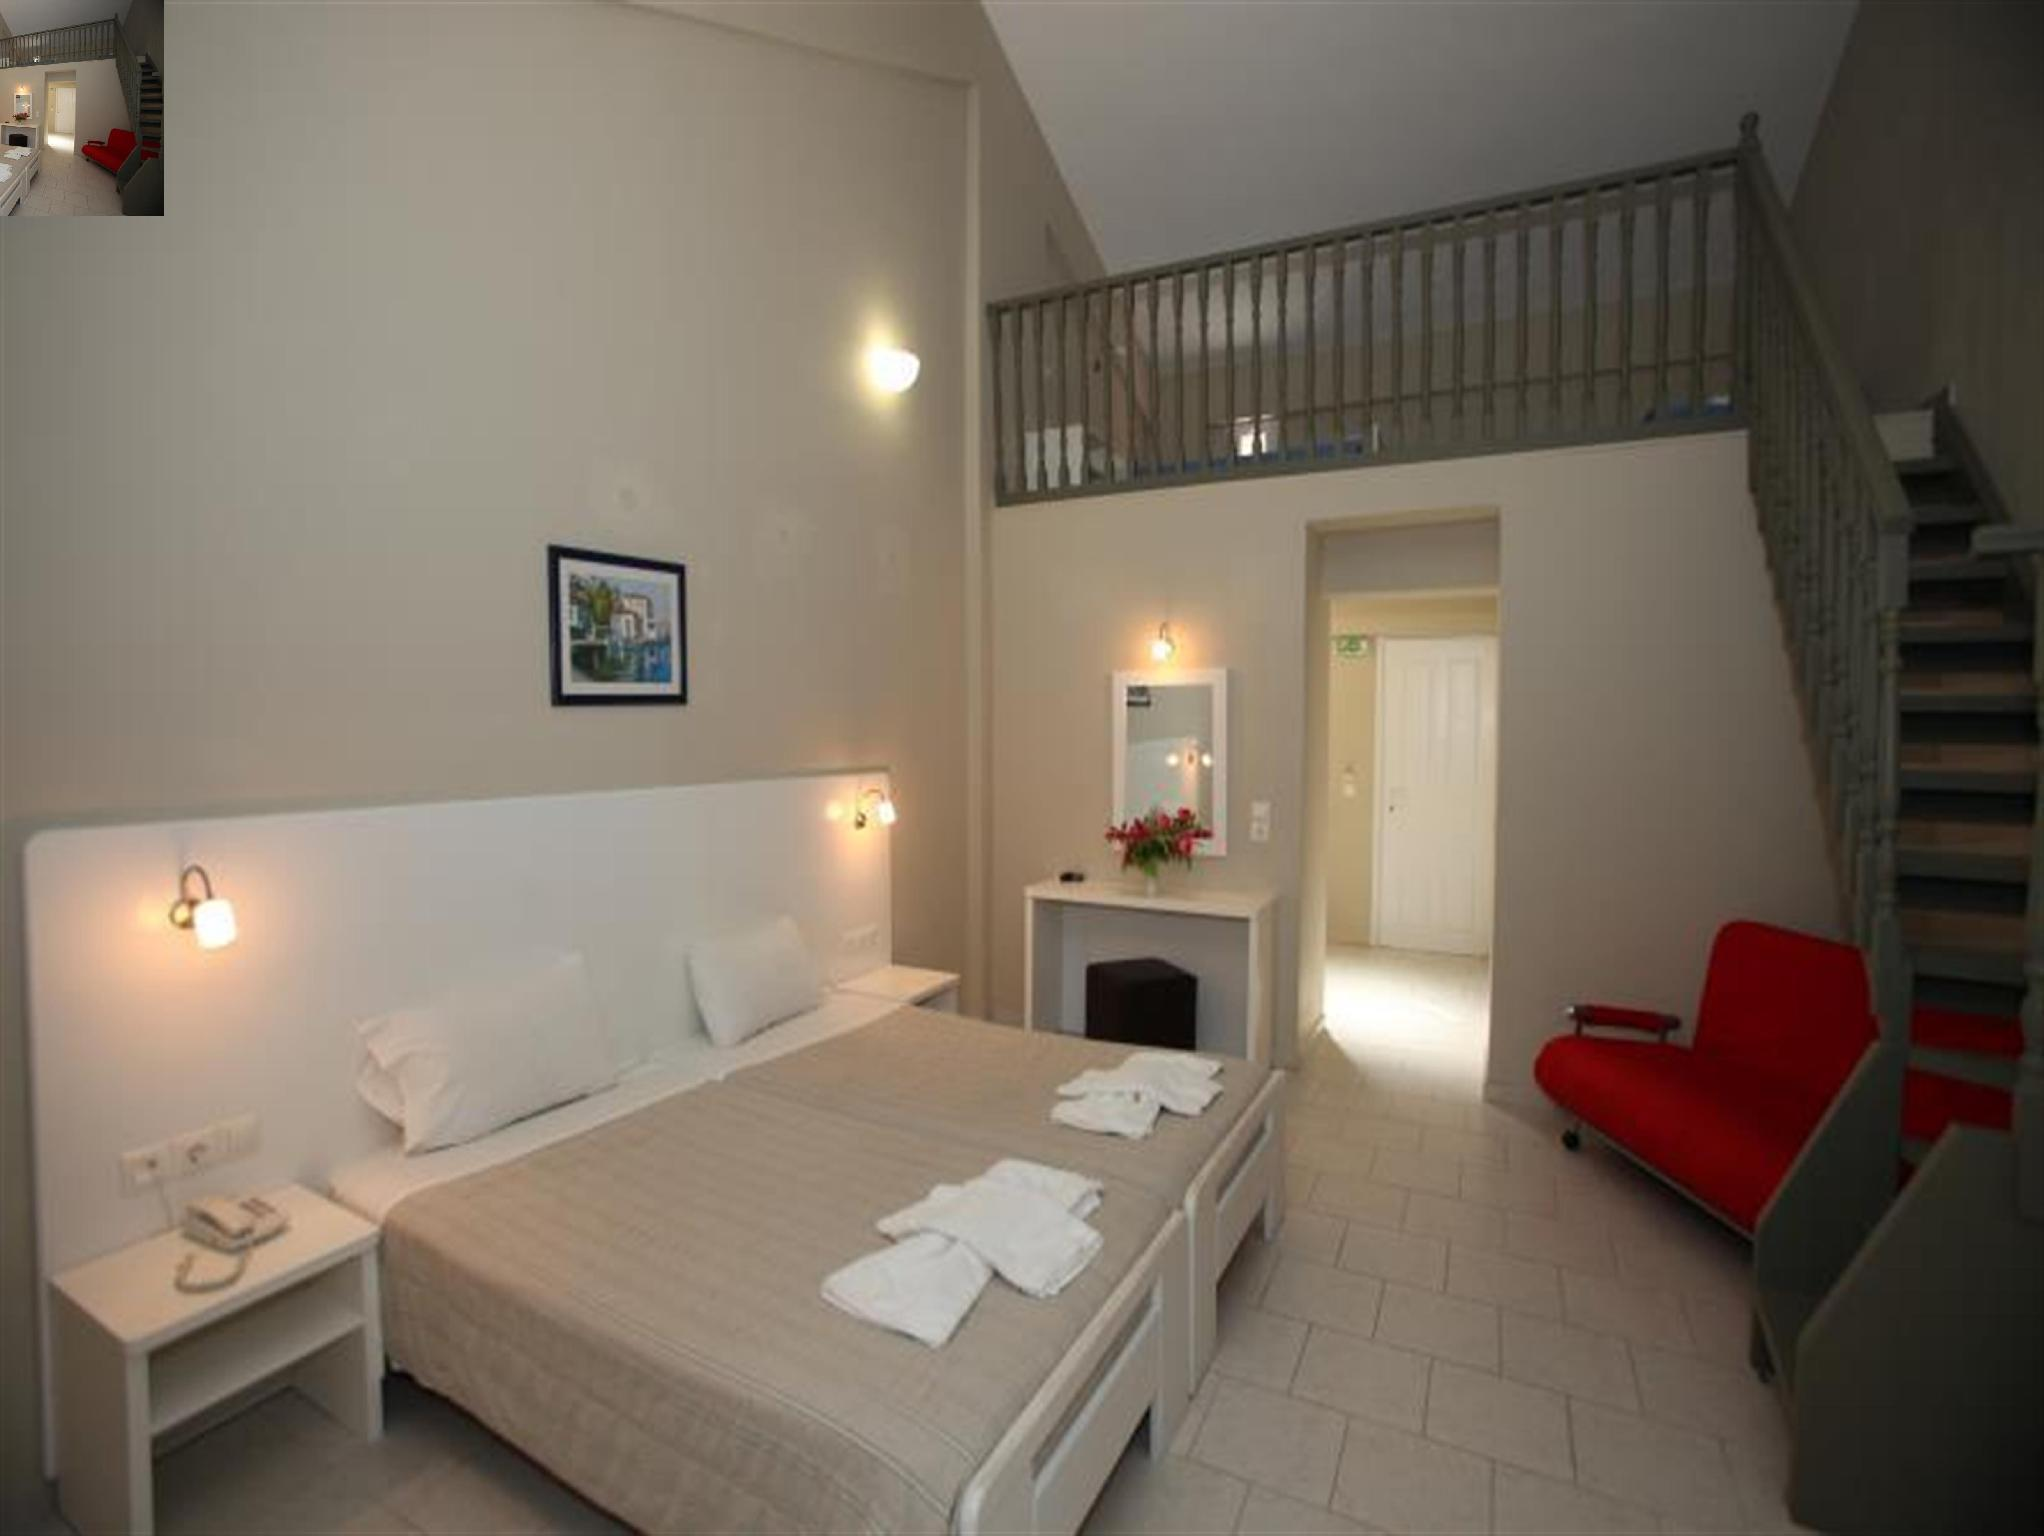 Quarto Familiar (tudo incluído) (Family Room All Inclusive)